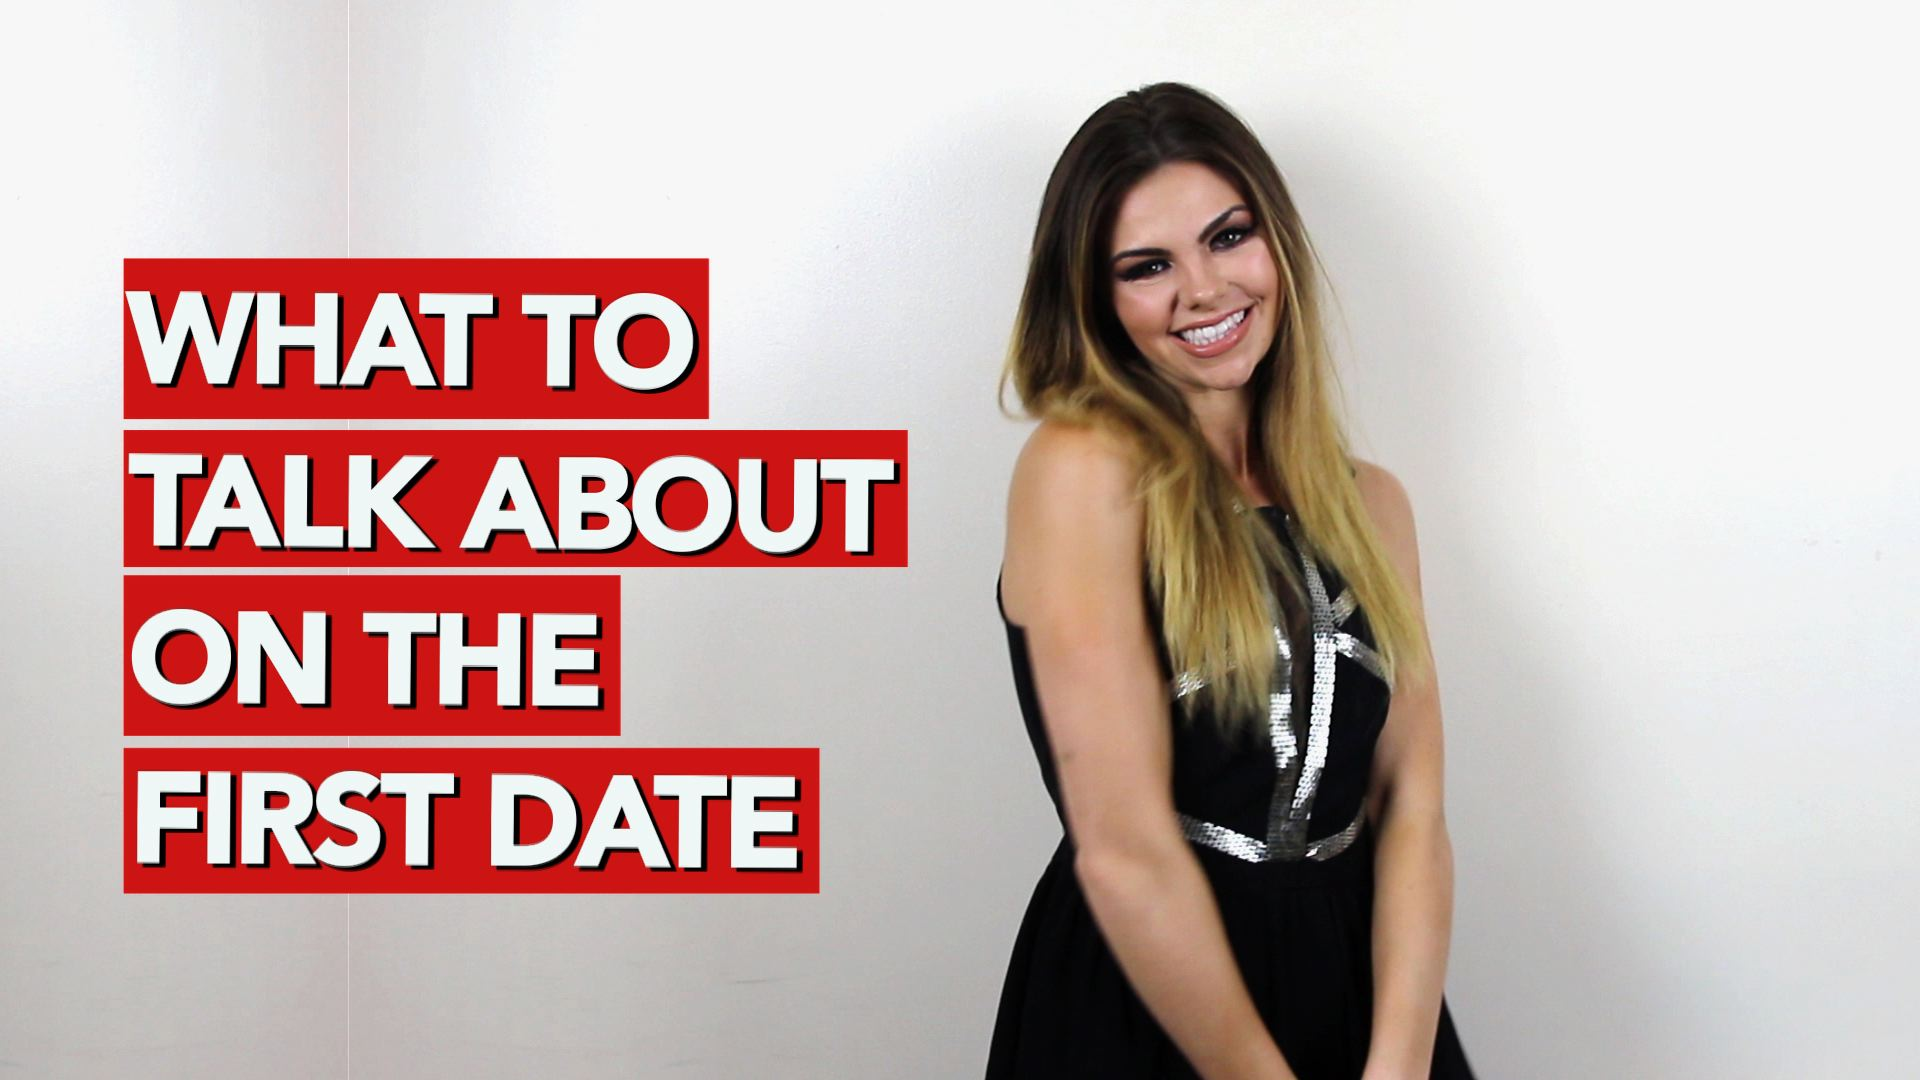 What to talk about on first date in Perth